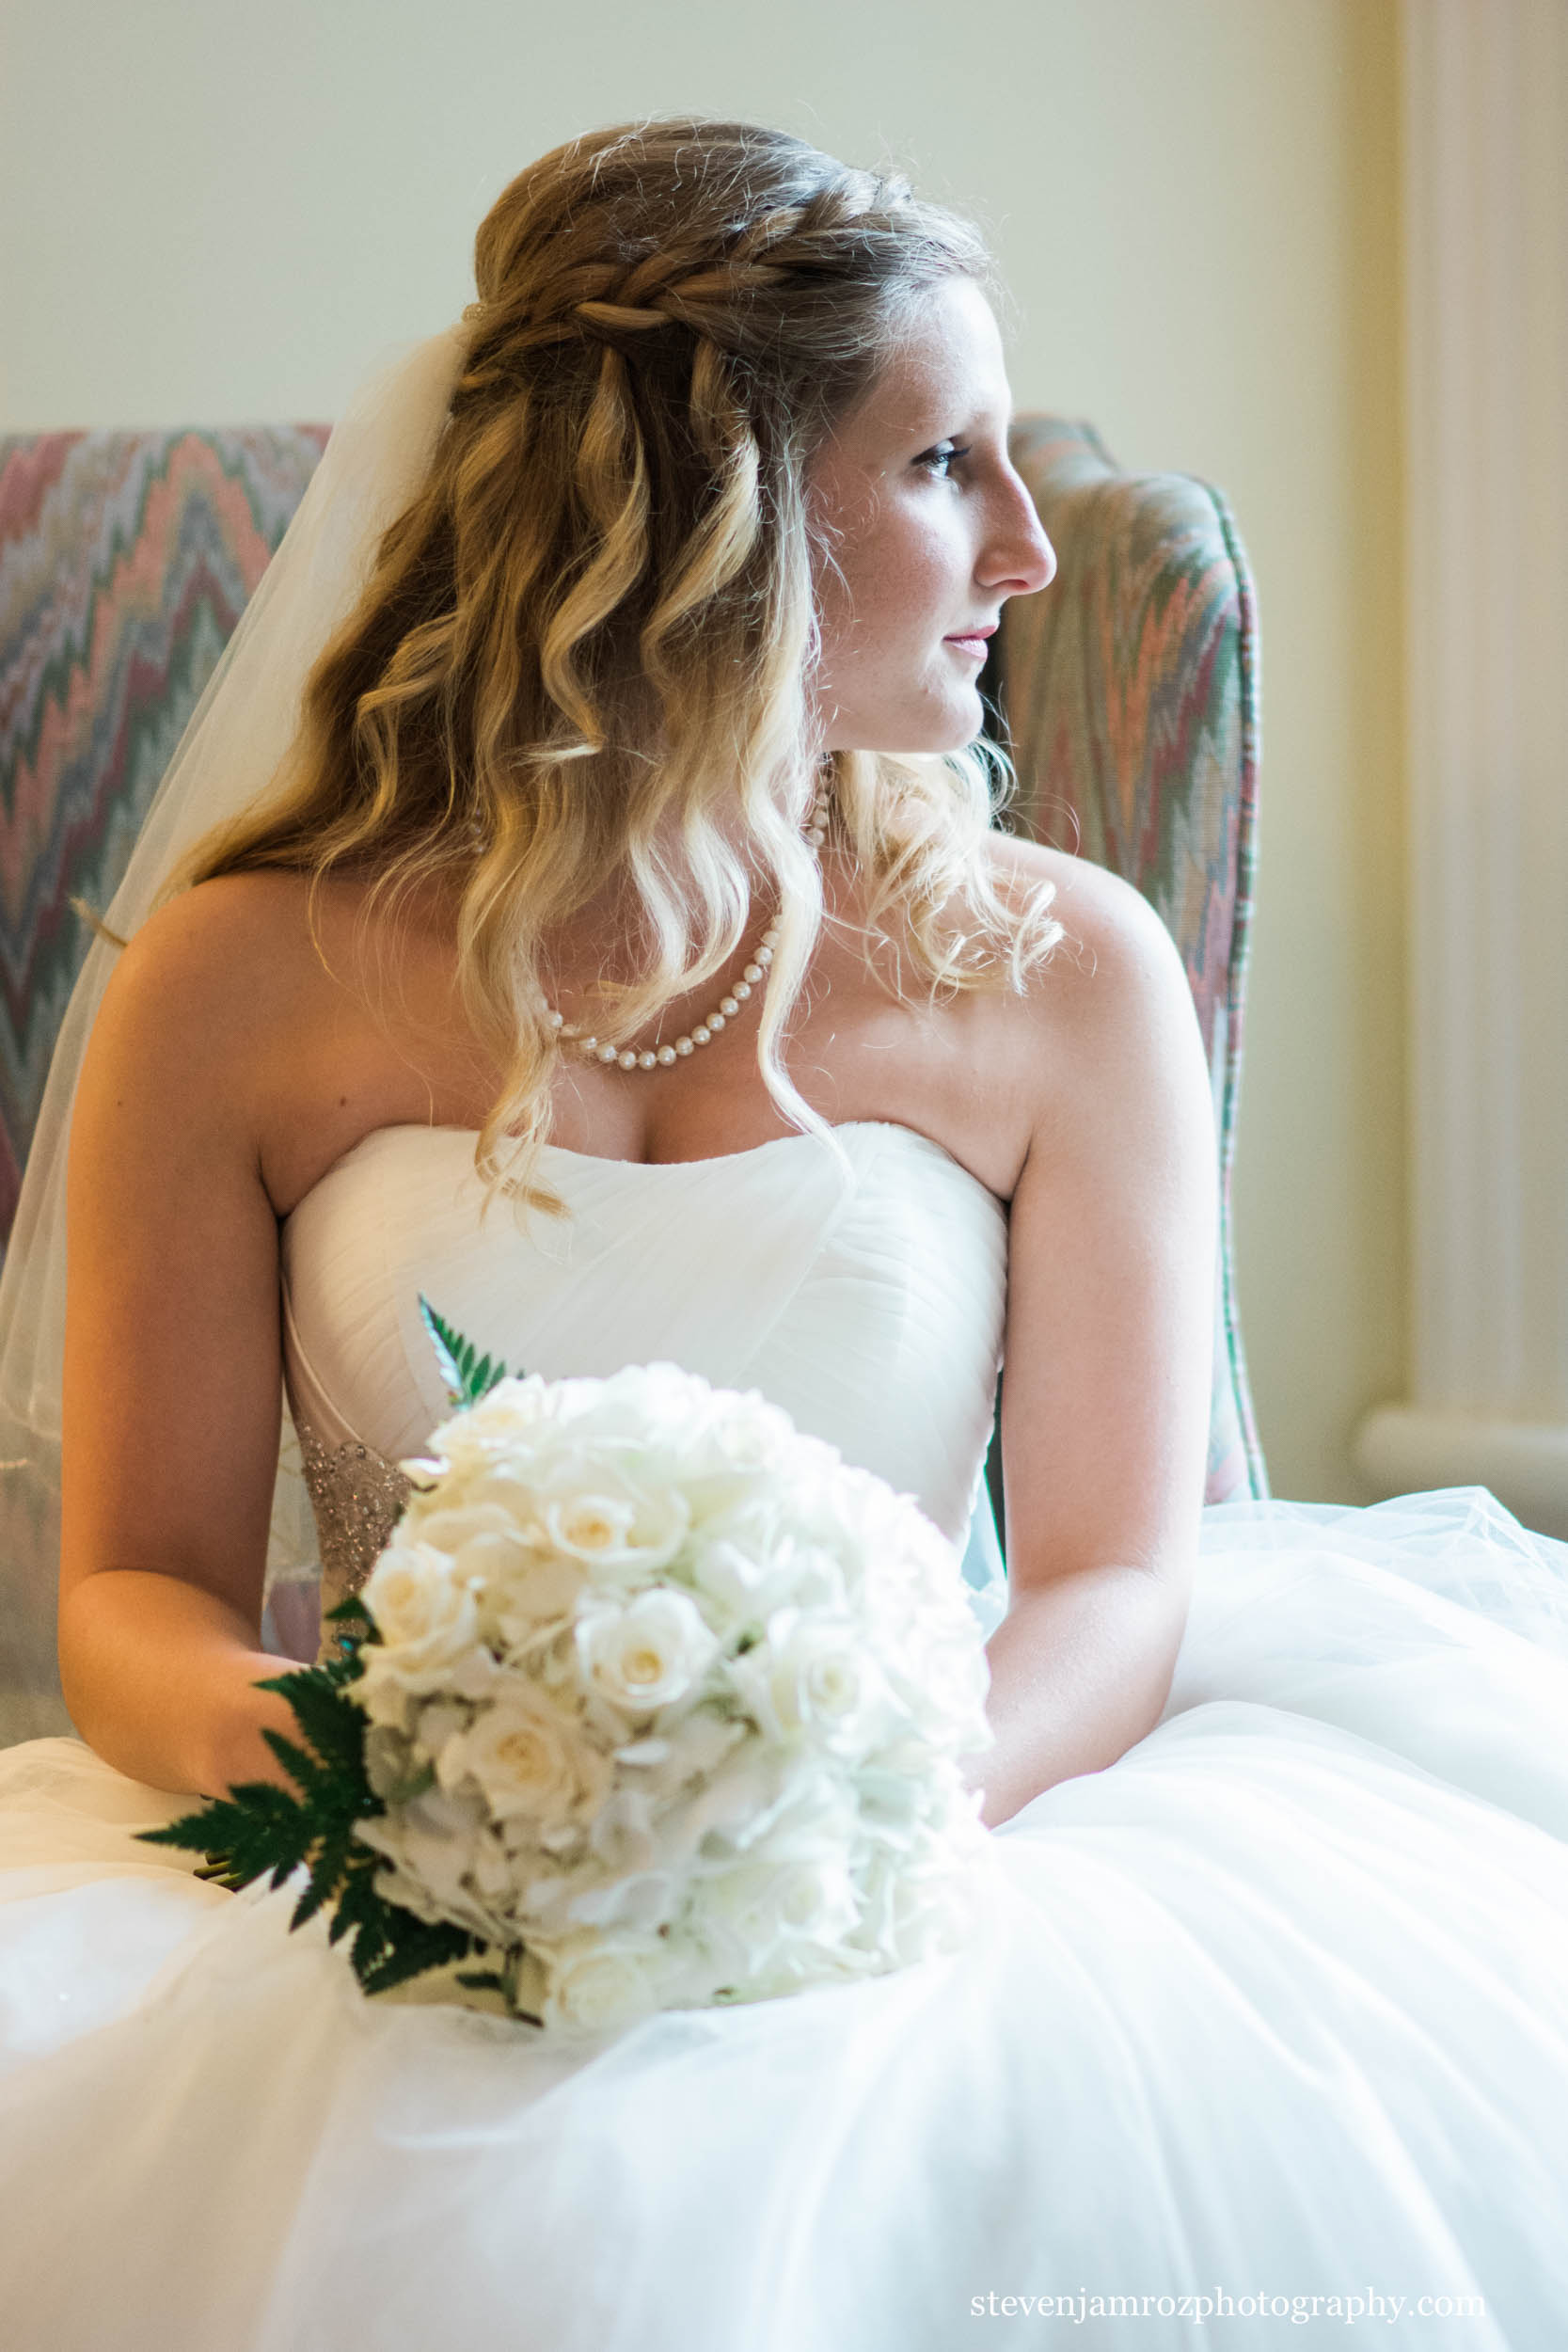 window-portrait-wedding-raleigh-nc-steven-jamroz-photography-0146.jpg